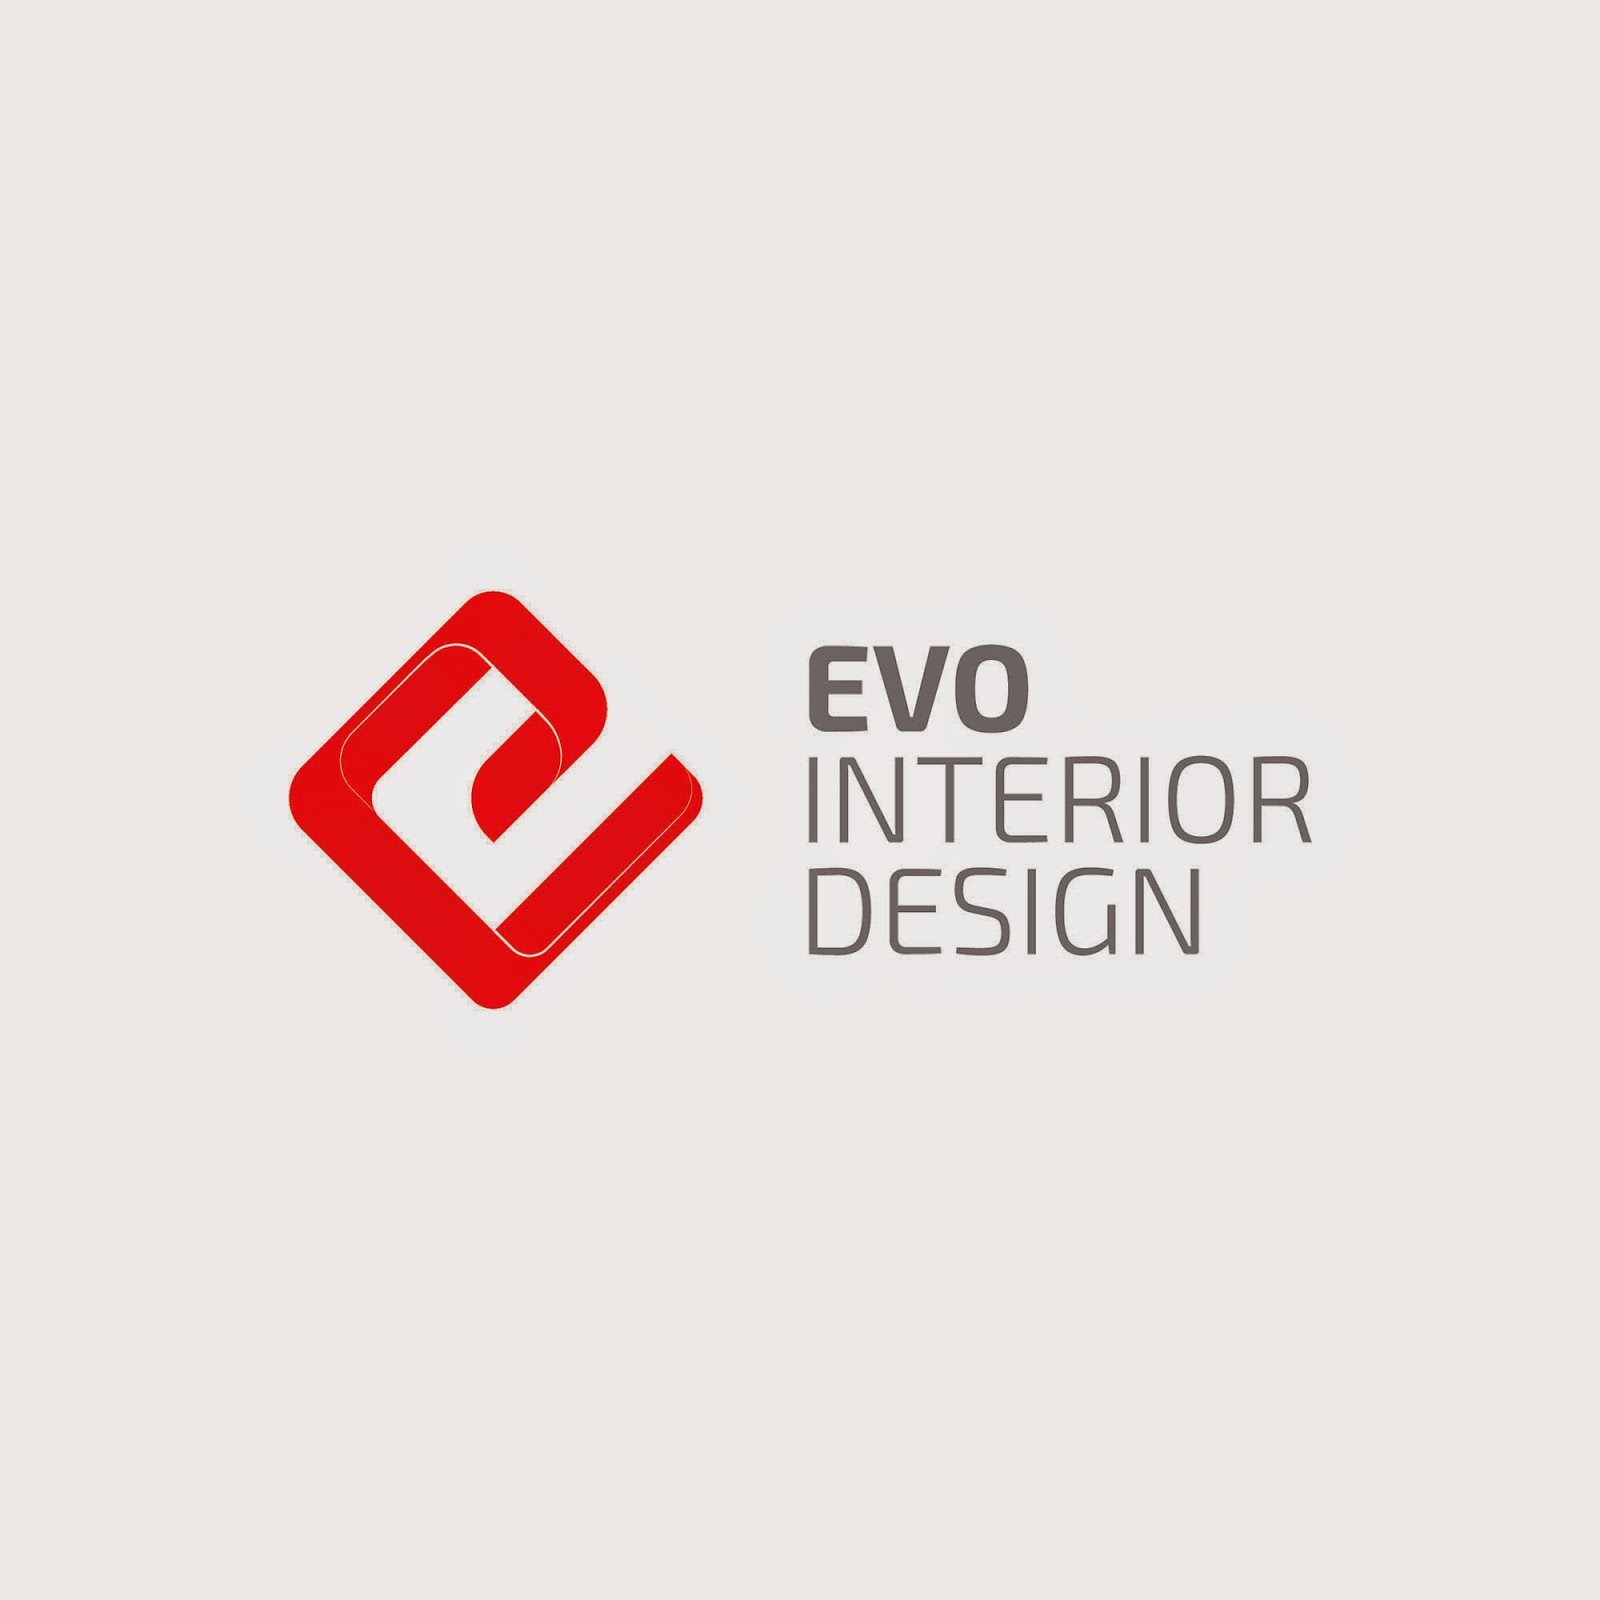 Another interior design logos ideas for your inspiration for Interior designs logos